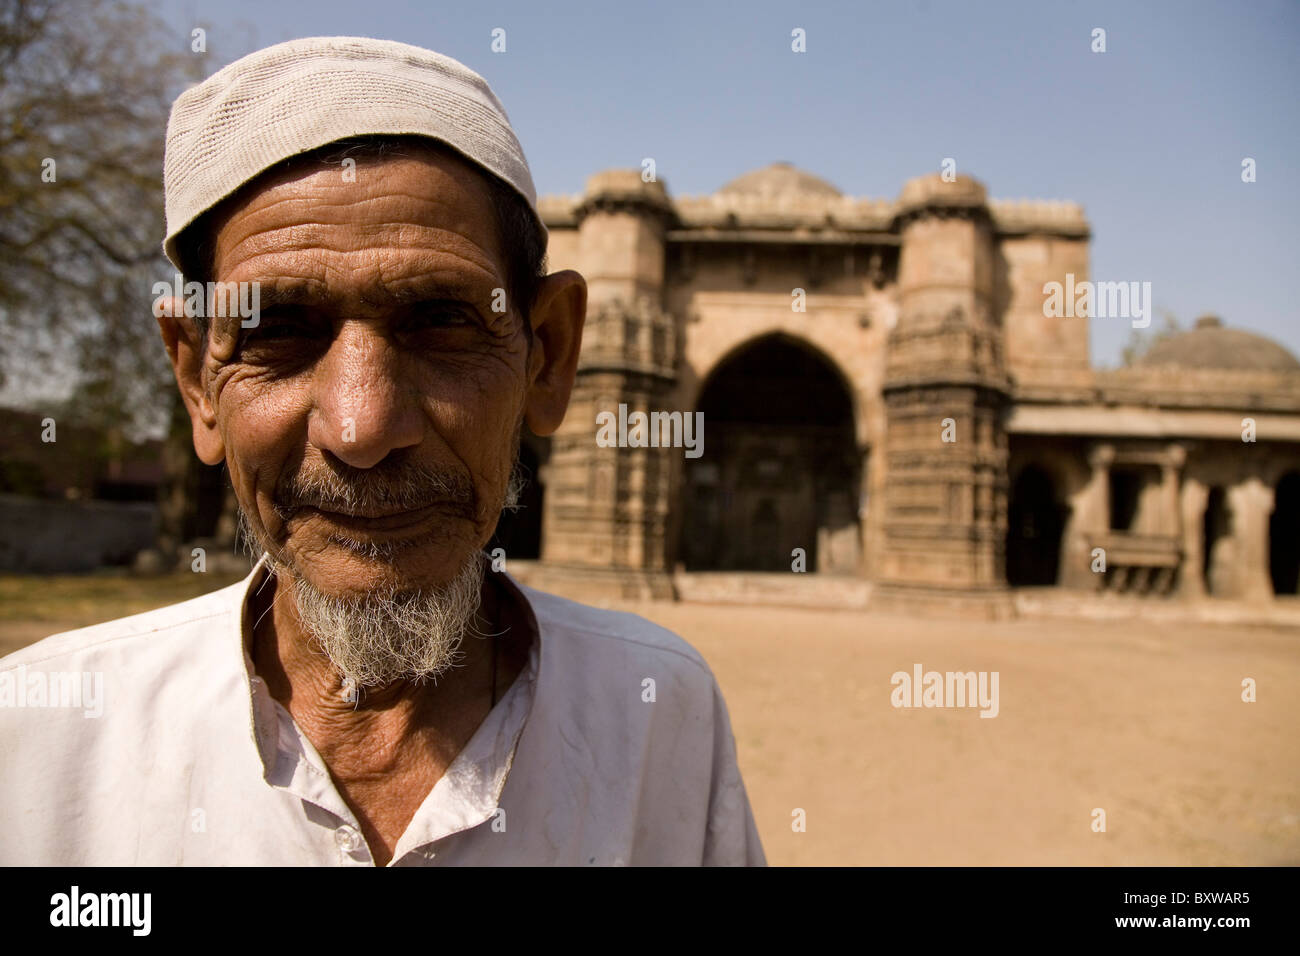 A Muslim man in a prayer cap stands in front of the Bai Harir Mosque at Ahmedabad, Gujarat, India. - Stock Image